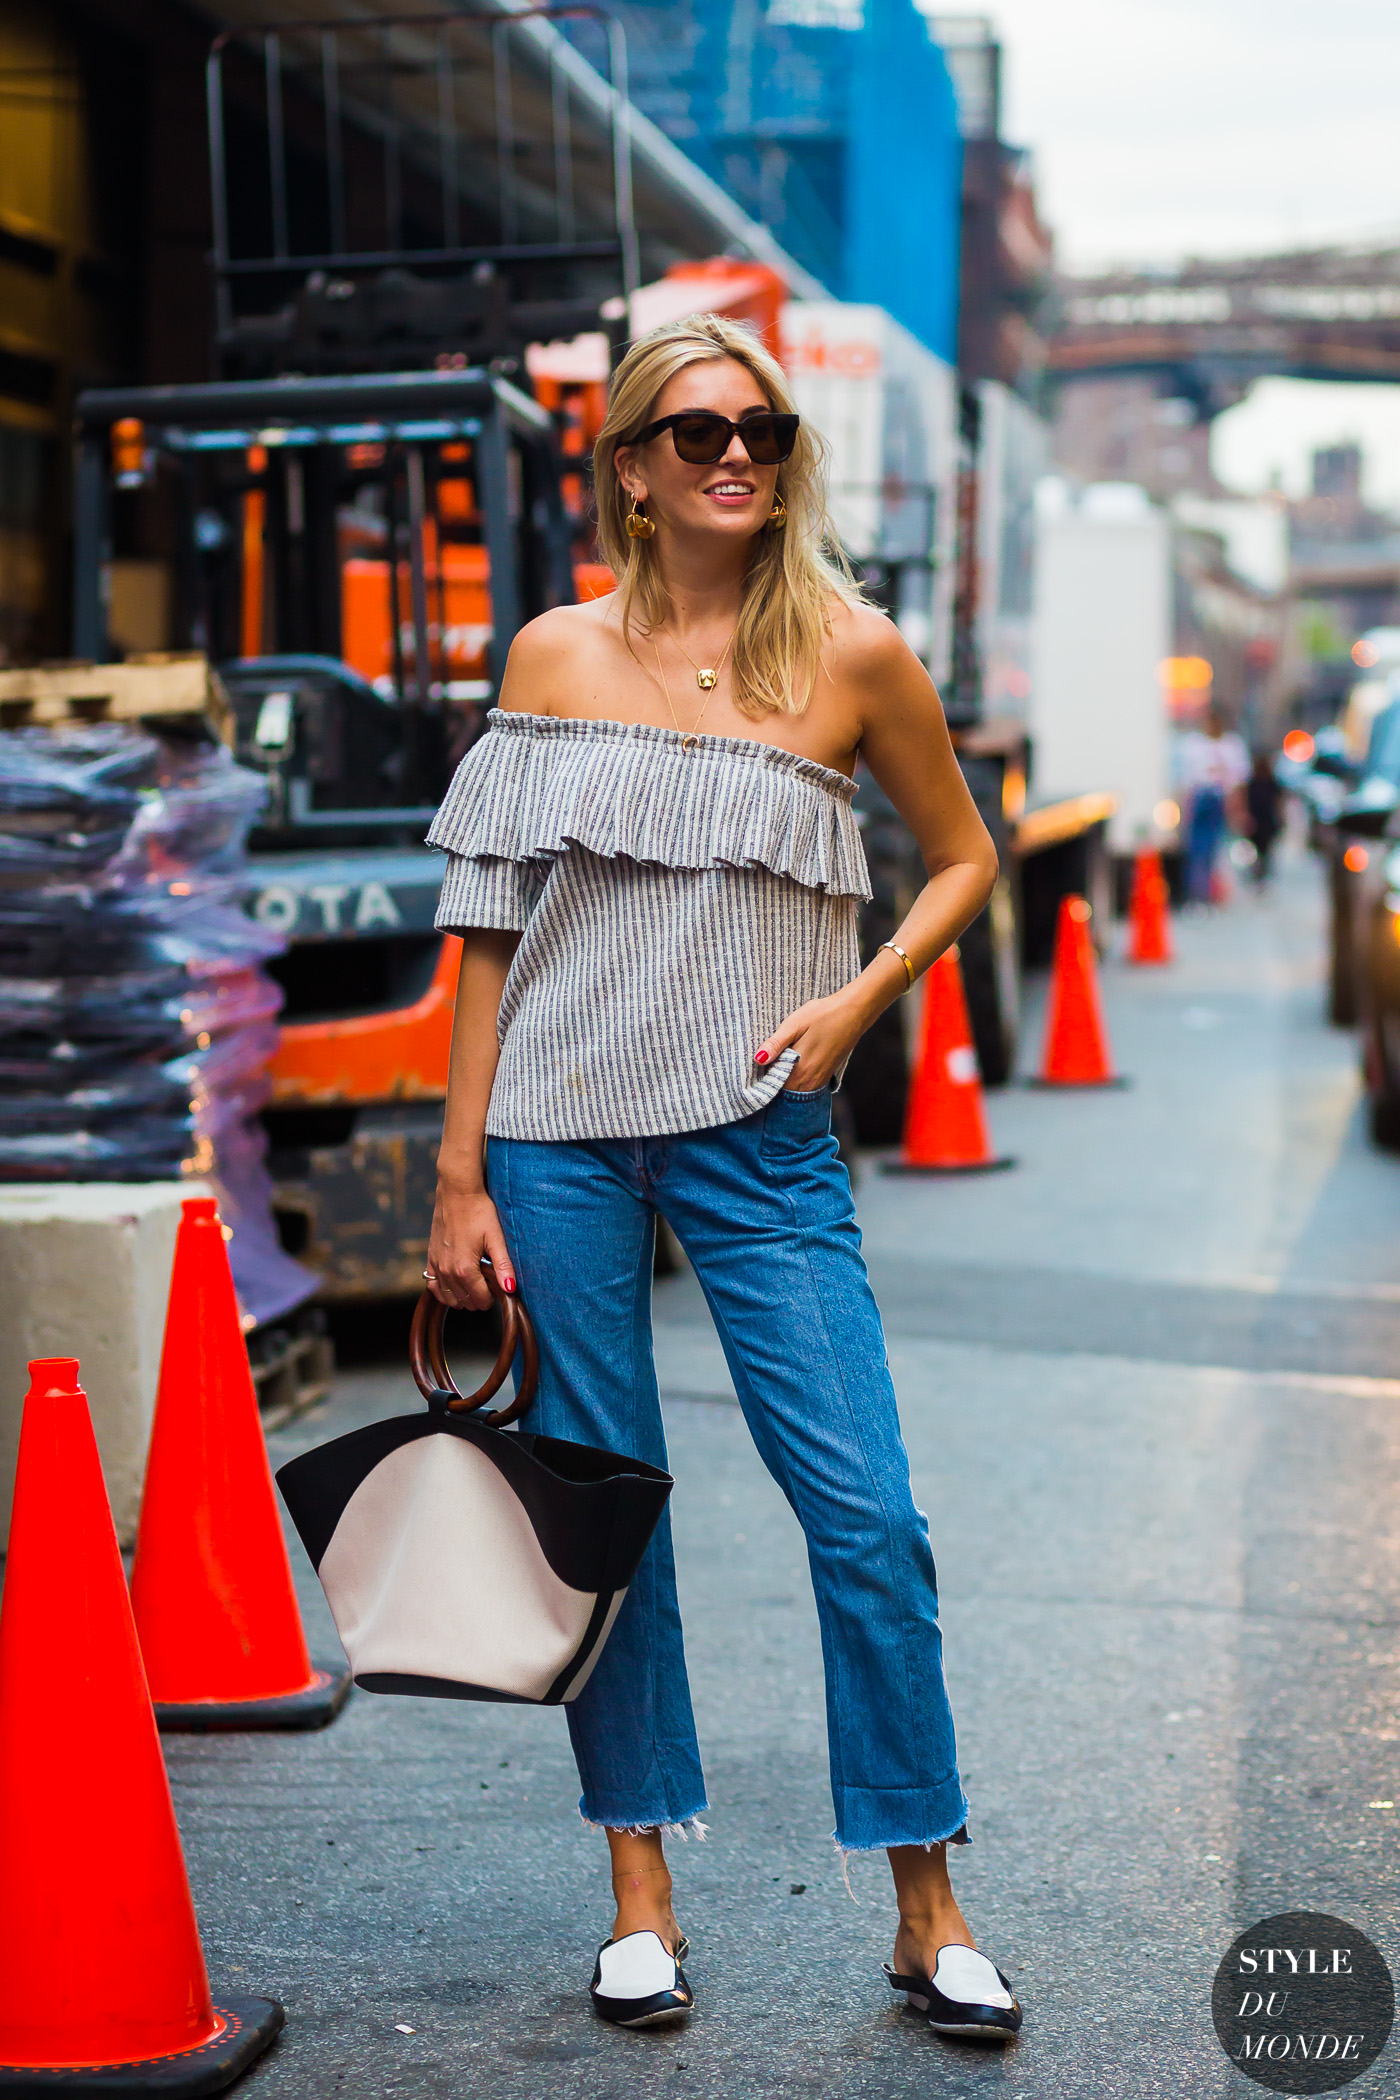 Camille Charriere by STYLEDUMONDE Street Style Fashion Photography0E2A0390